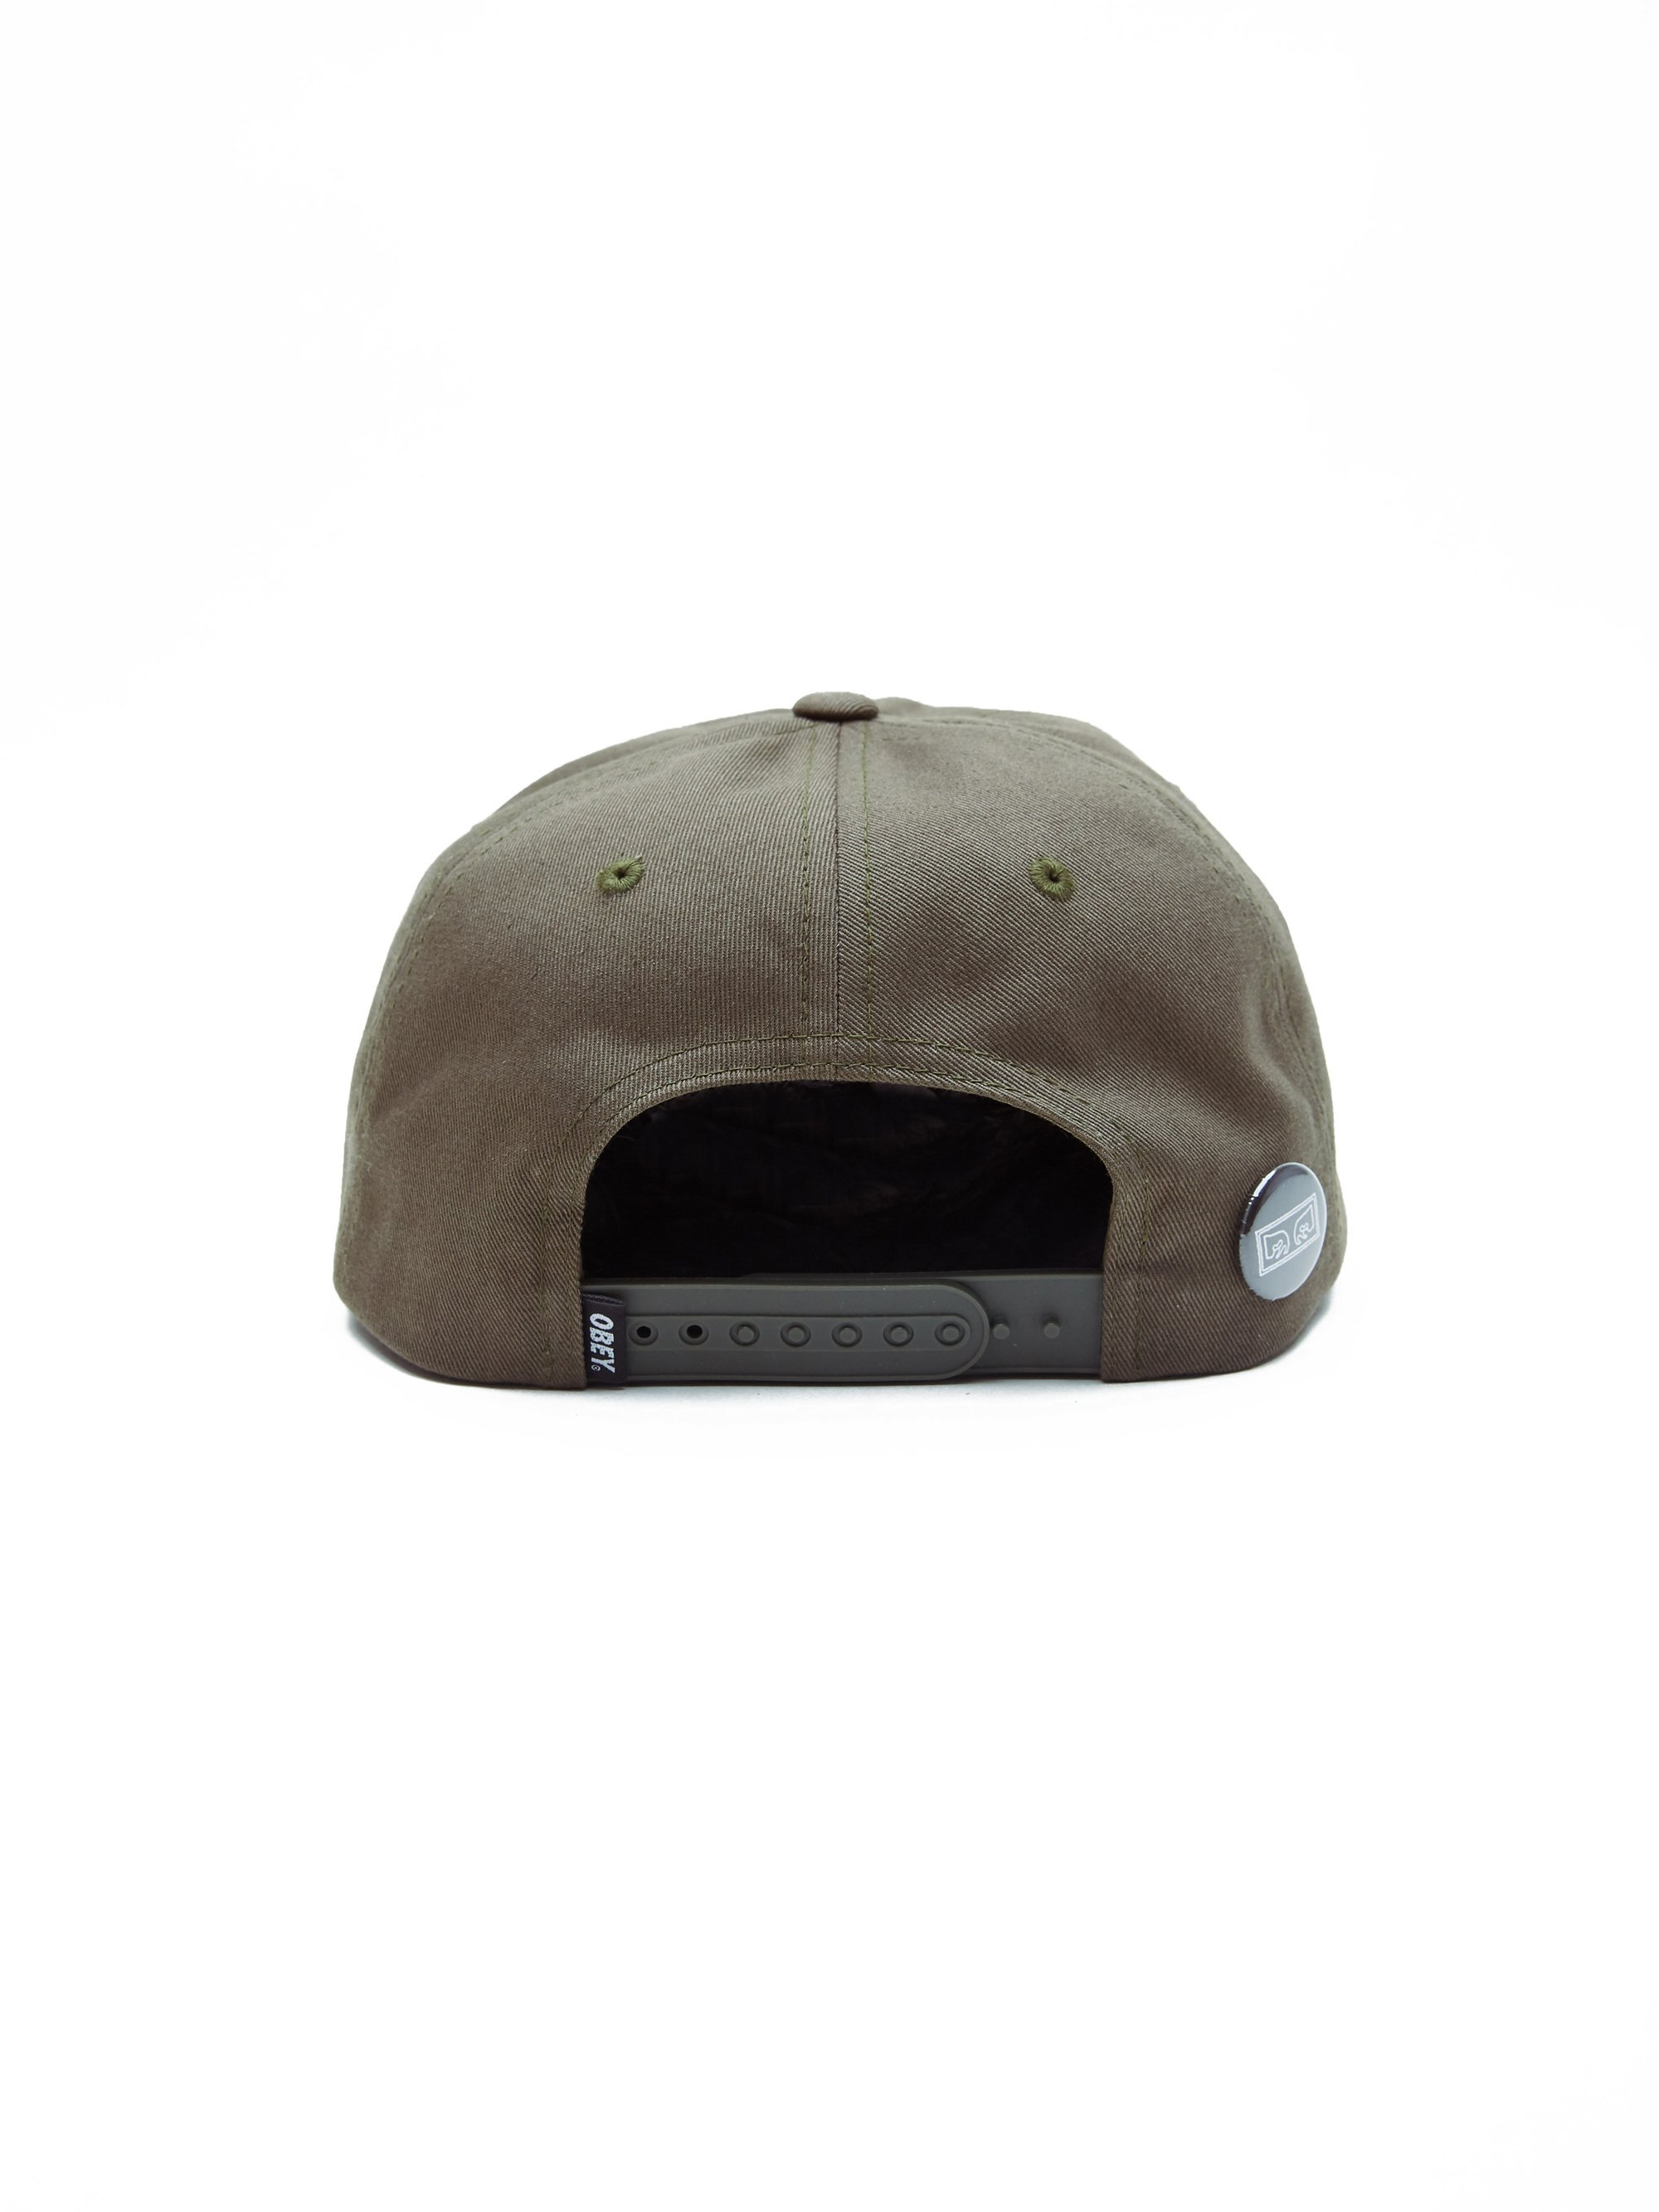 OBEY_Cutty_6_Panel_Snapback_100580074_ARM_2_2000x.jpg